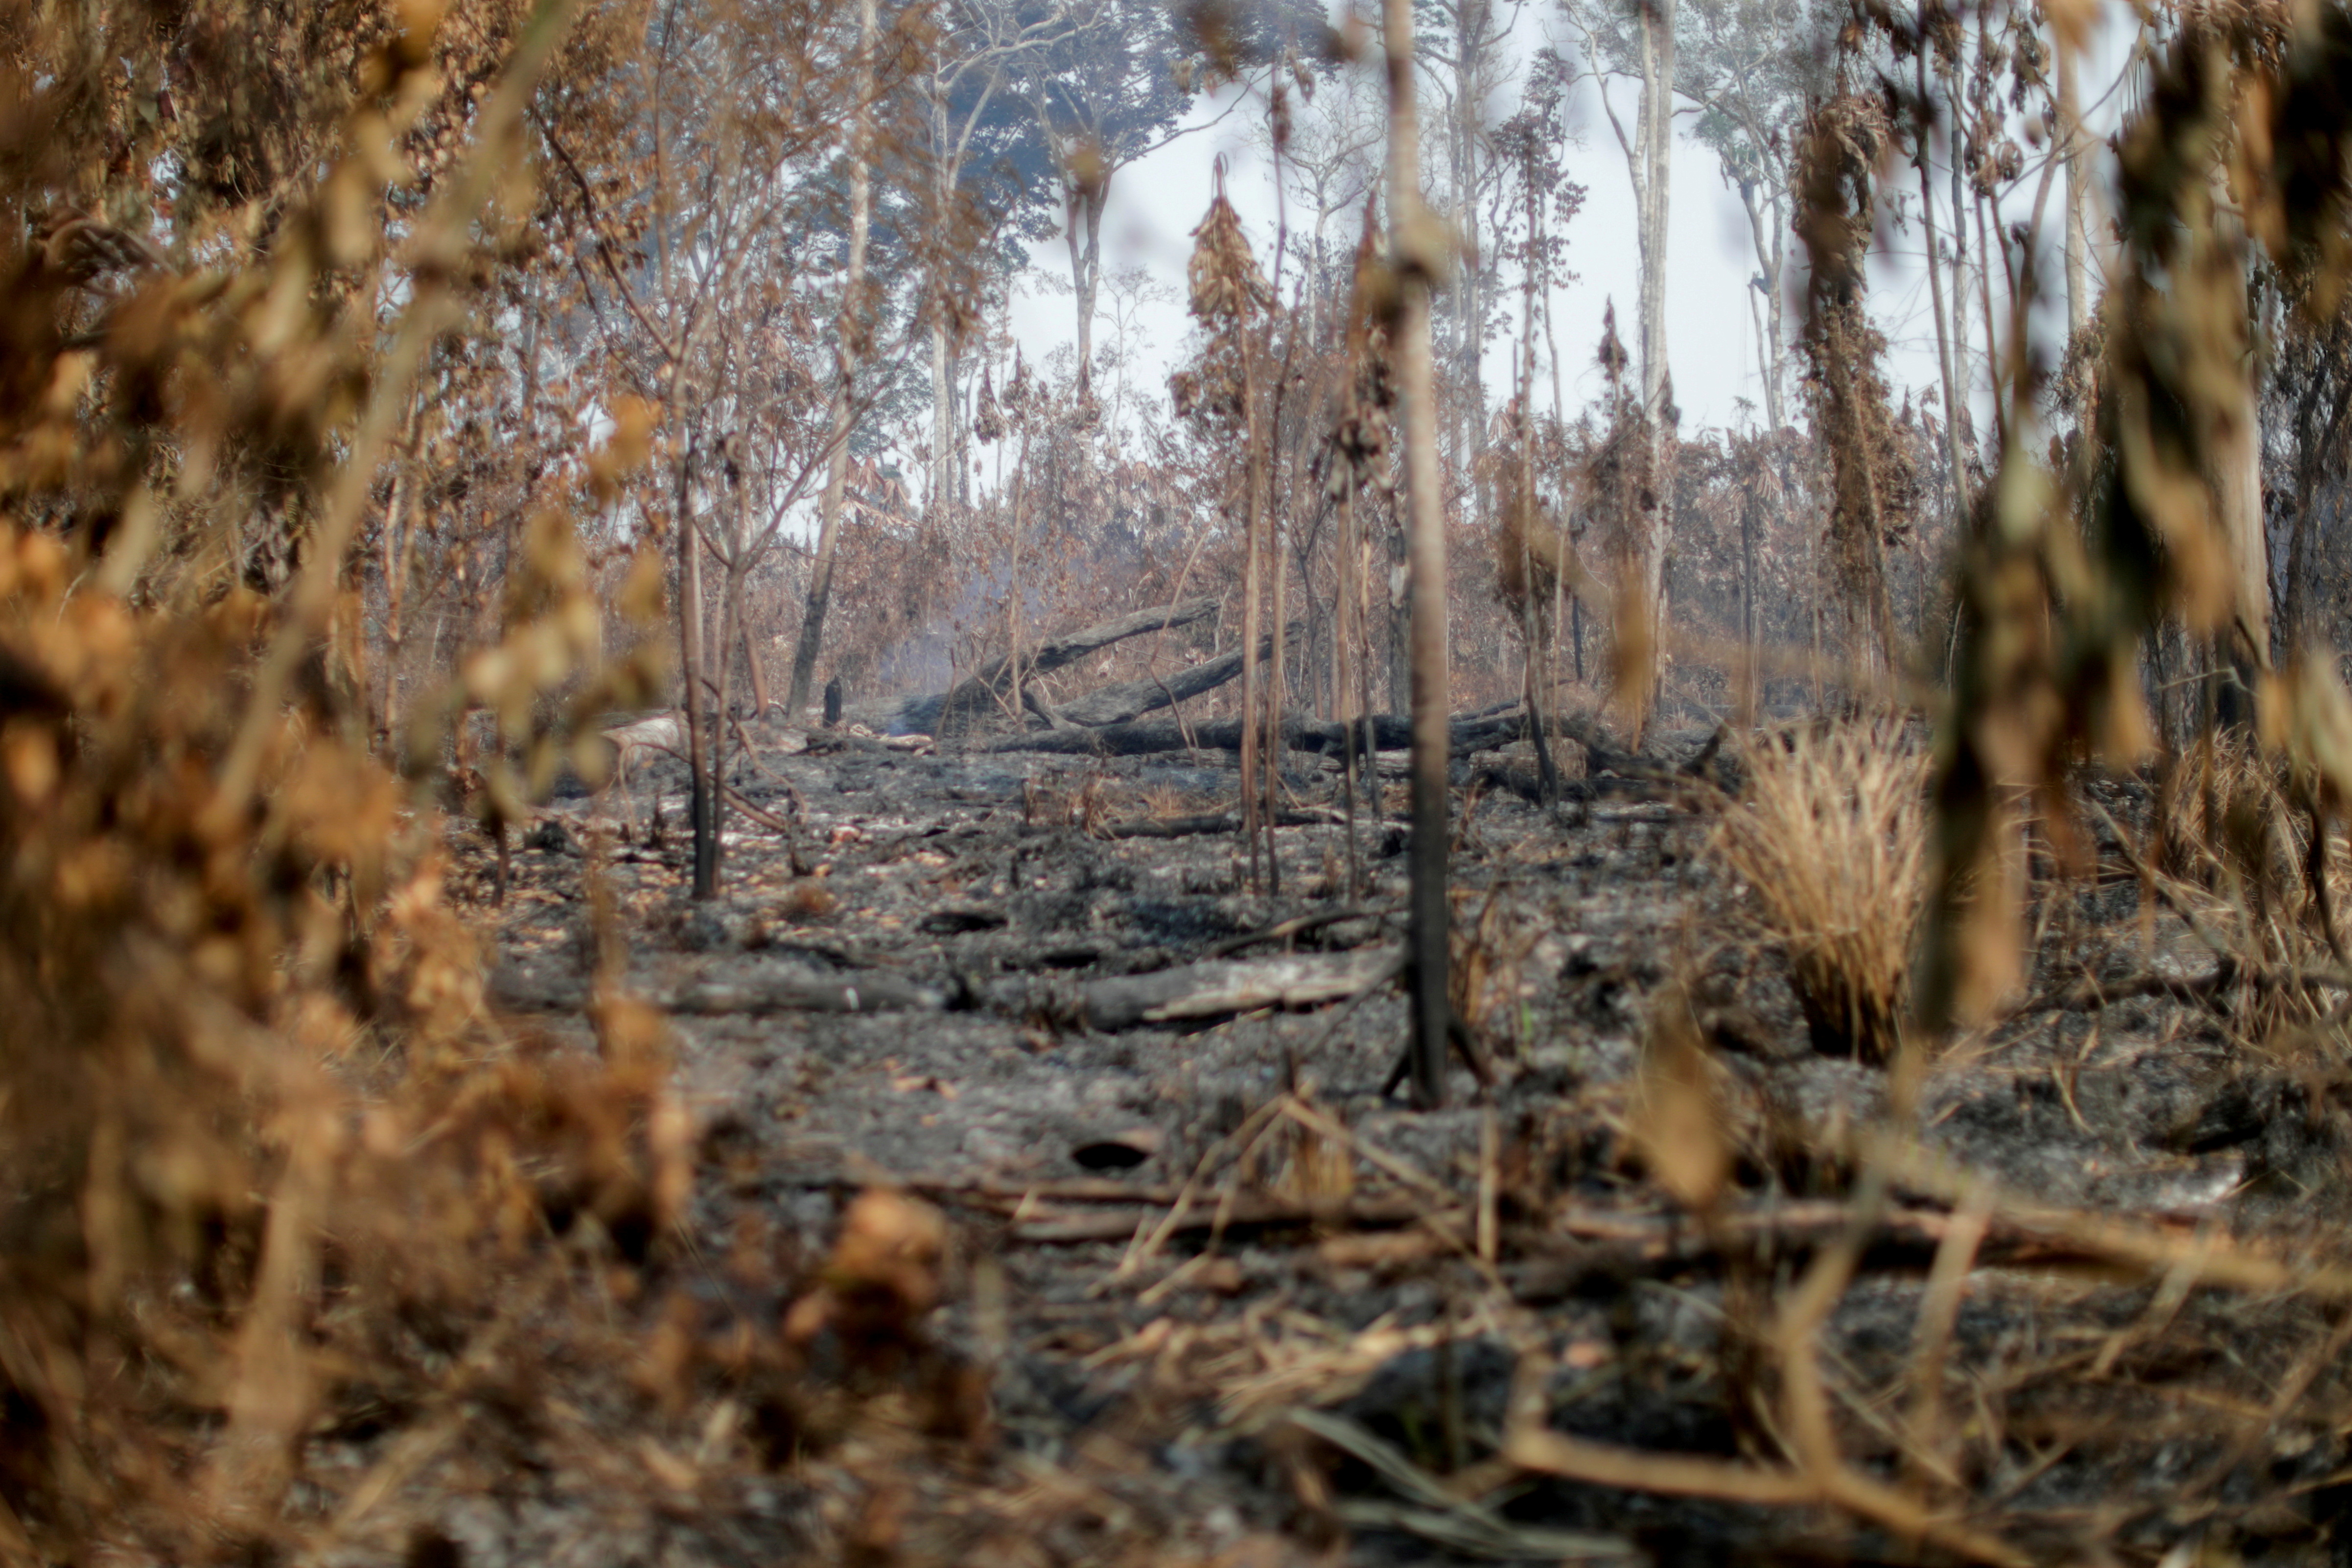 A burning tract of the Amazon jungle is seen near Apui, Amazonas State, Brazil, August 11, 2020. REUTERS/Ueslei Marcelino